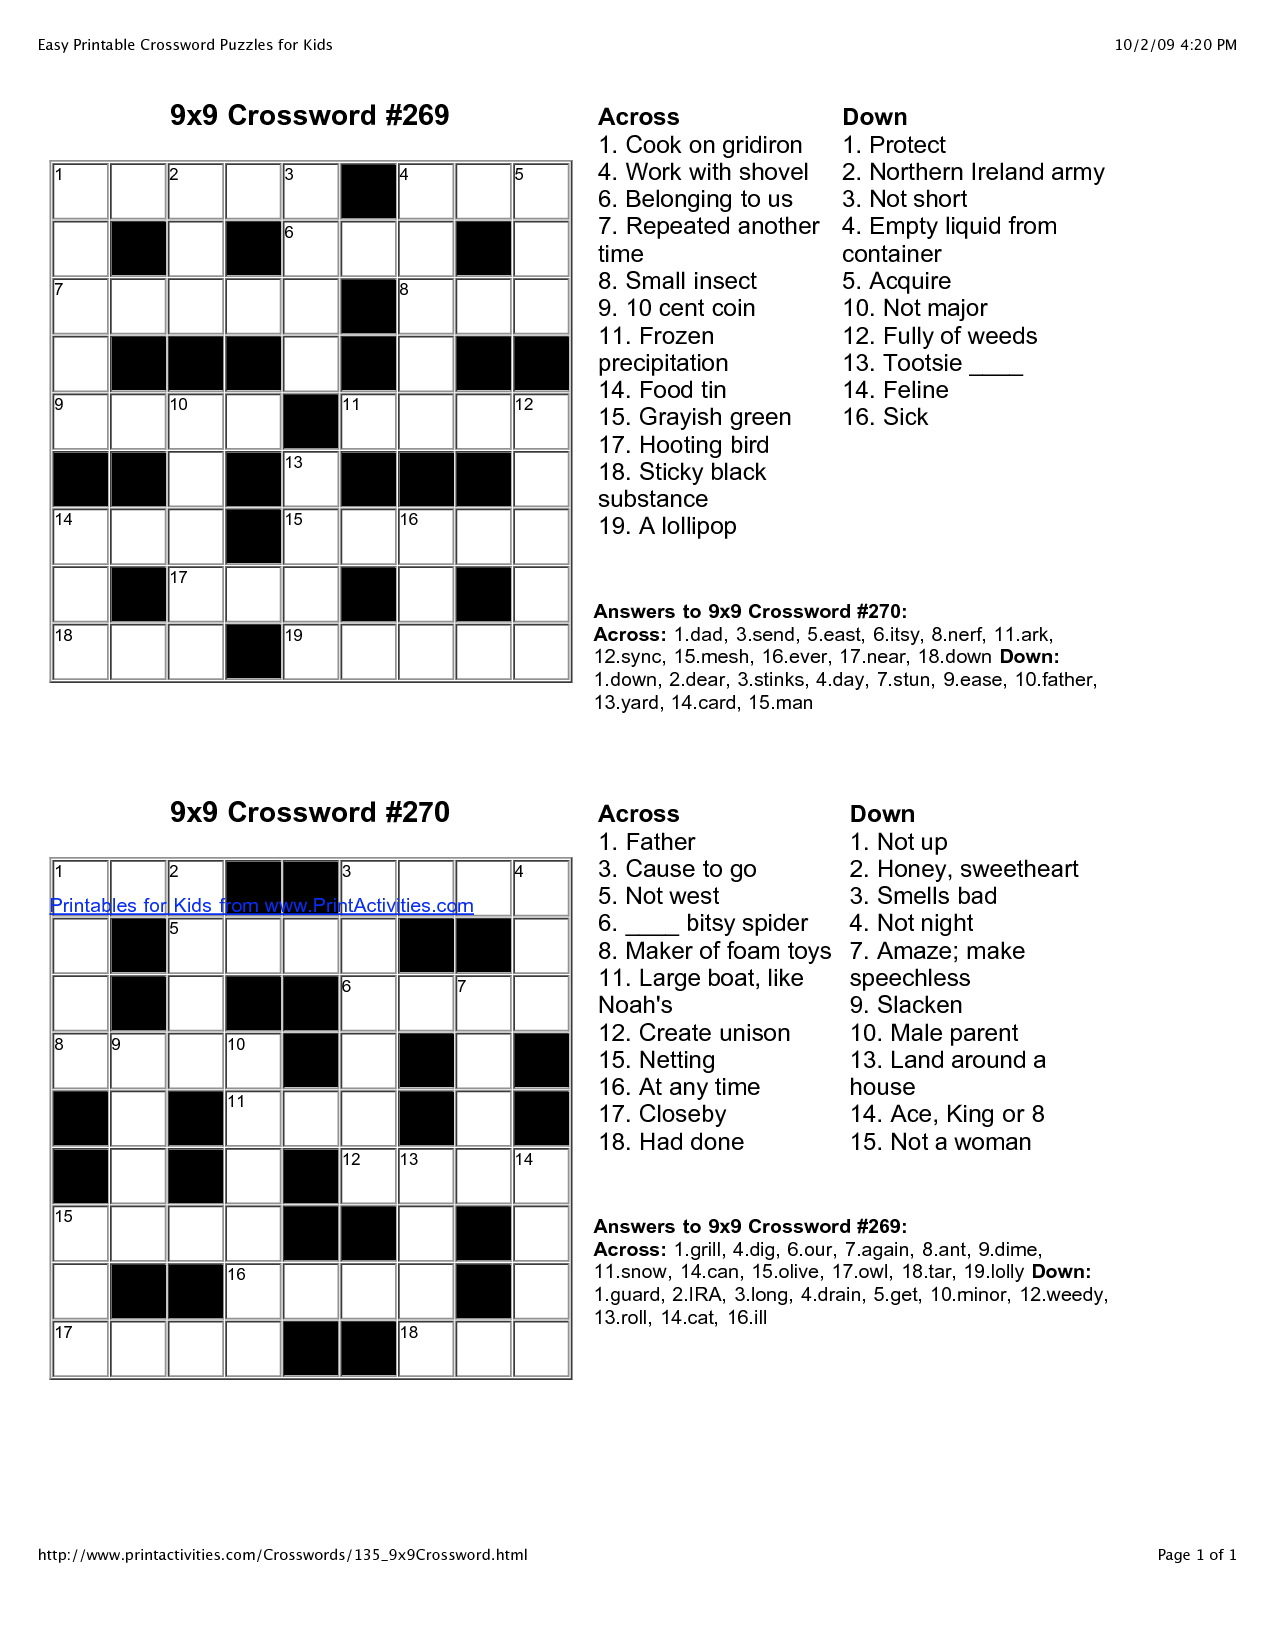 Easy Crossword Puzzles | I'm Going To Be An Slp! | Kids Crossword - Printable Puzzles To Do At Work